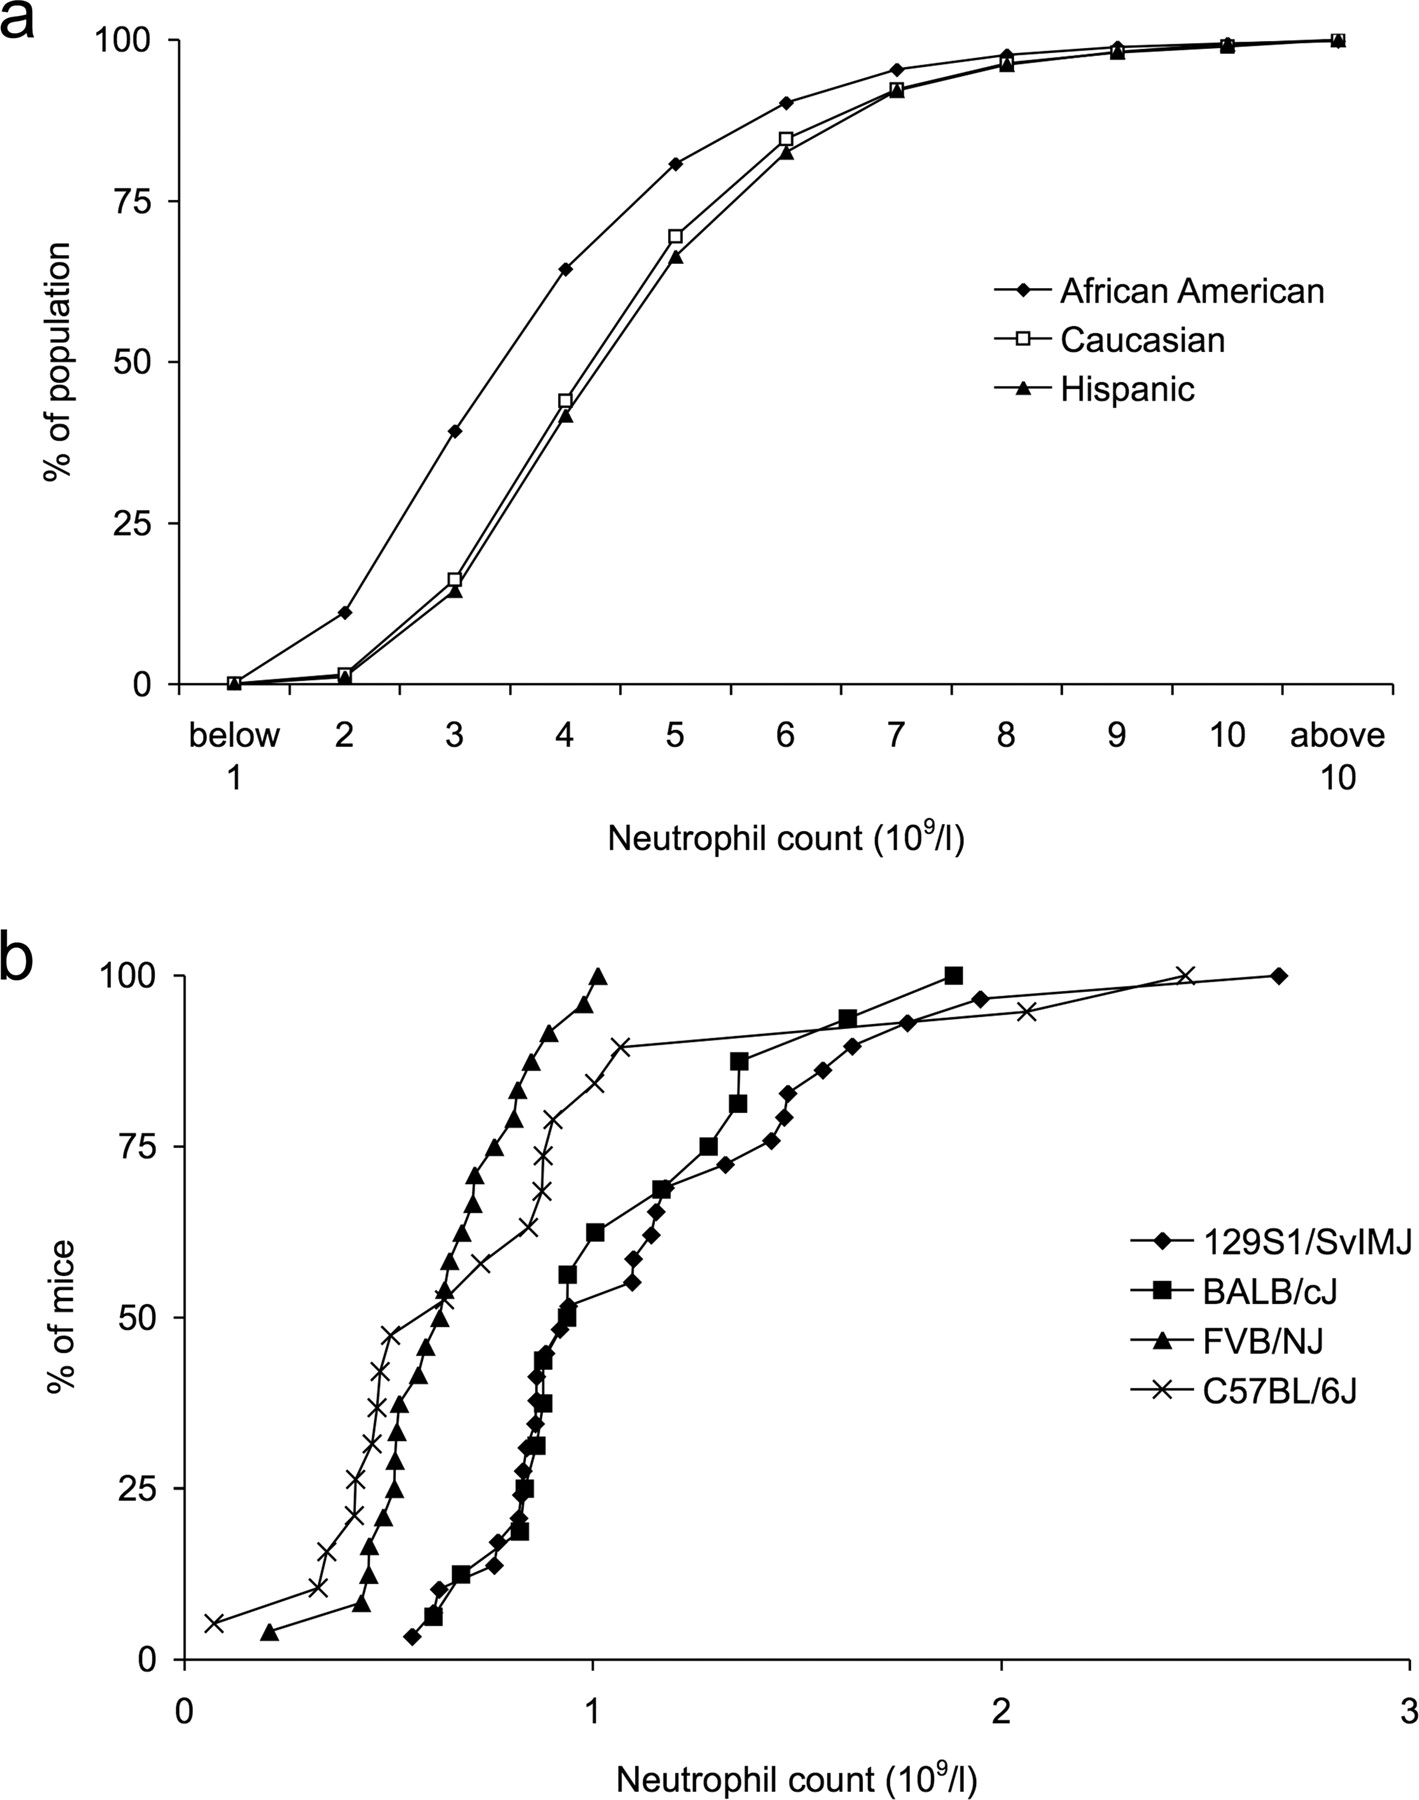 Homeostatic Regulation of Blood Neutrophil Counts | The Journal of